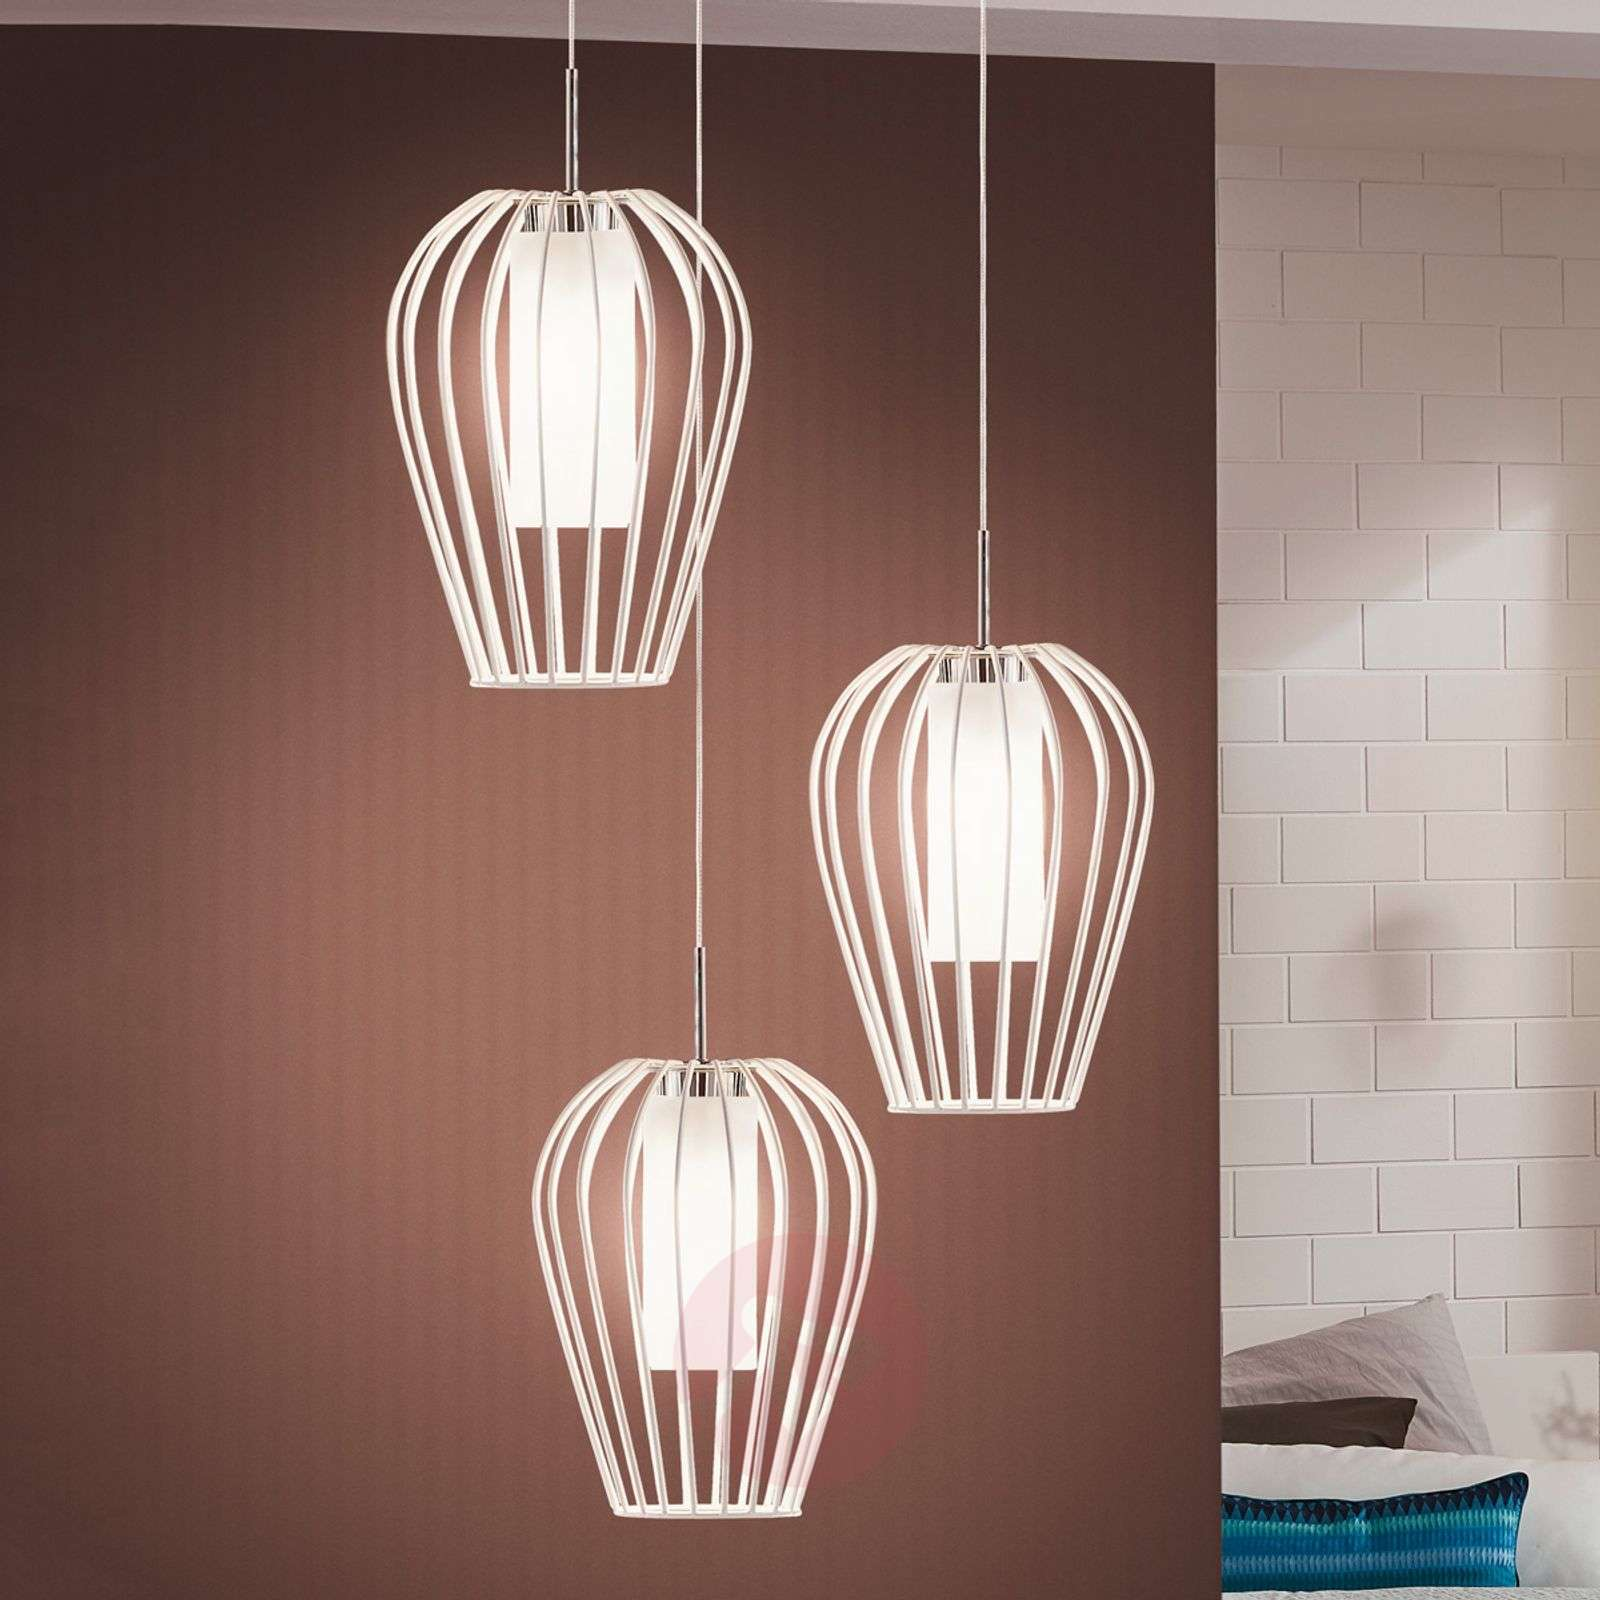 Stijlvolle LED hanglamp Vencino in wit-3031738-01